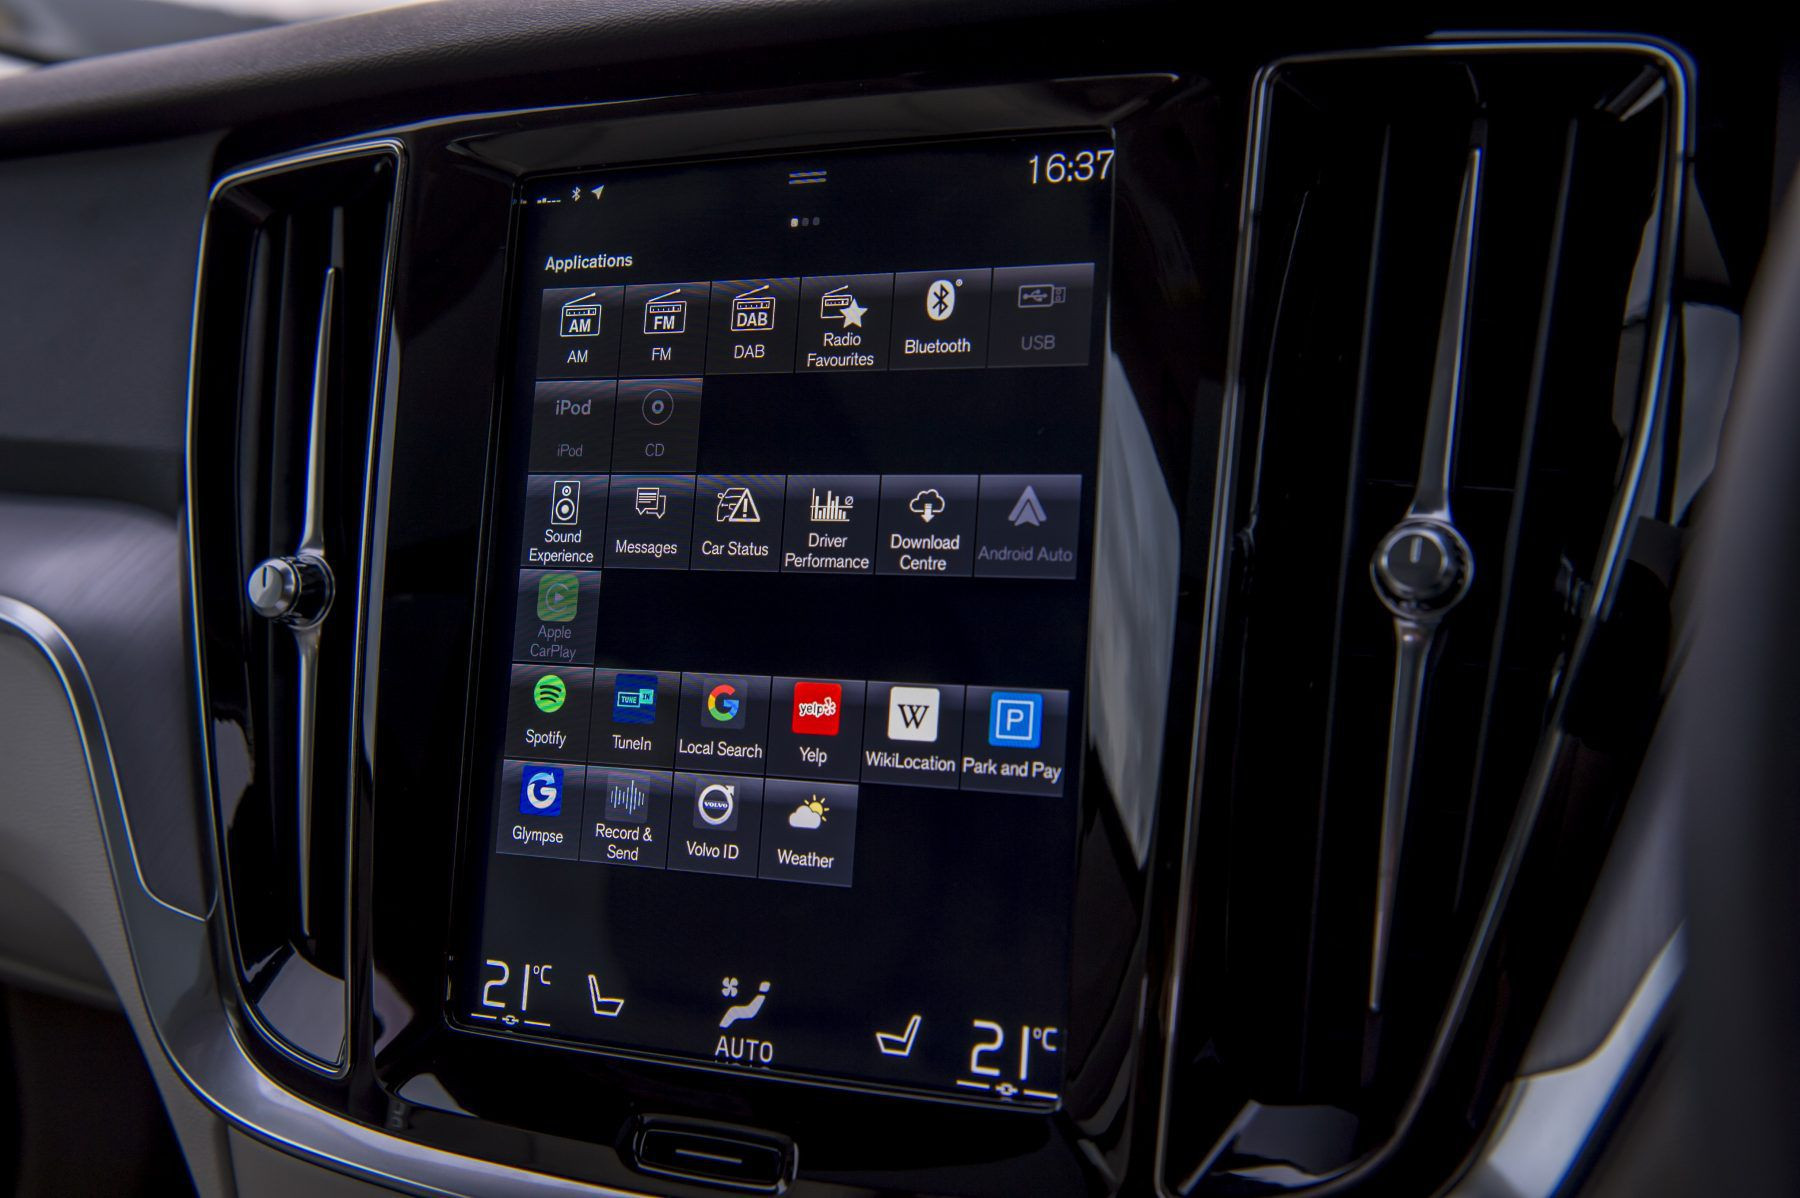 nine-inch touchscreen infotainment system in the Volvo V60